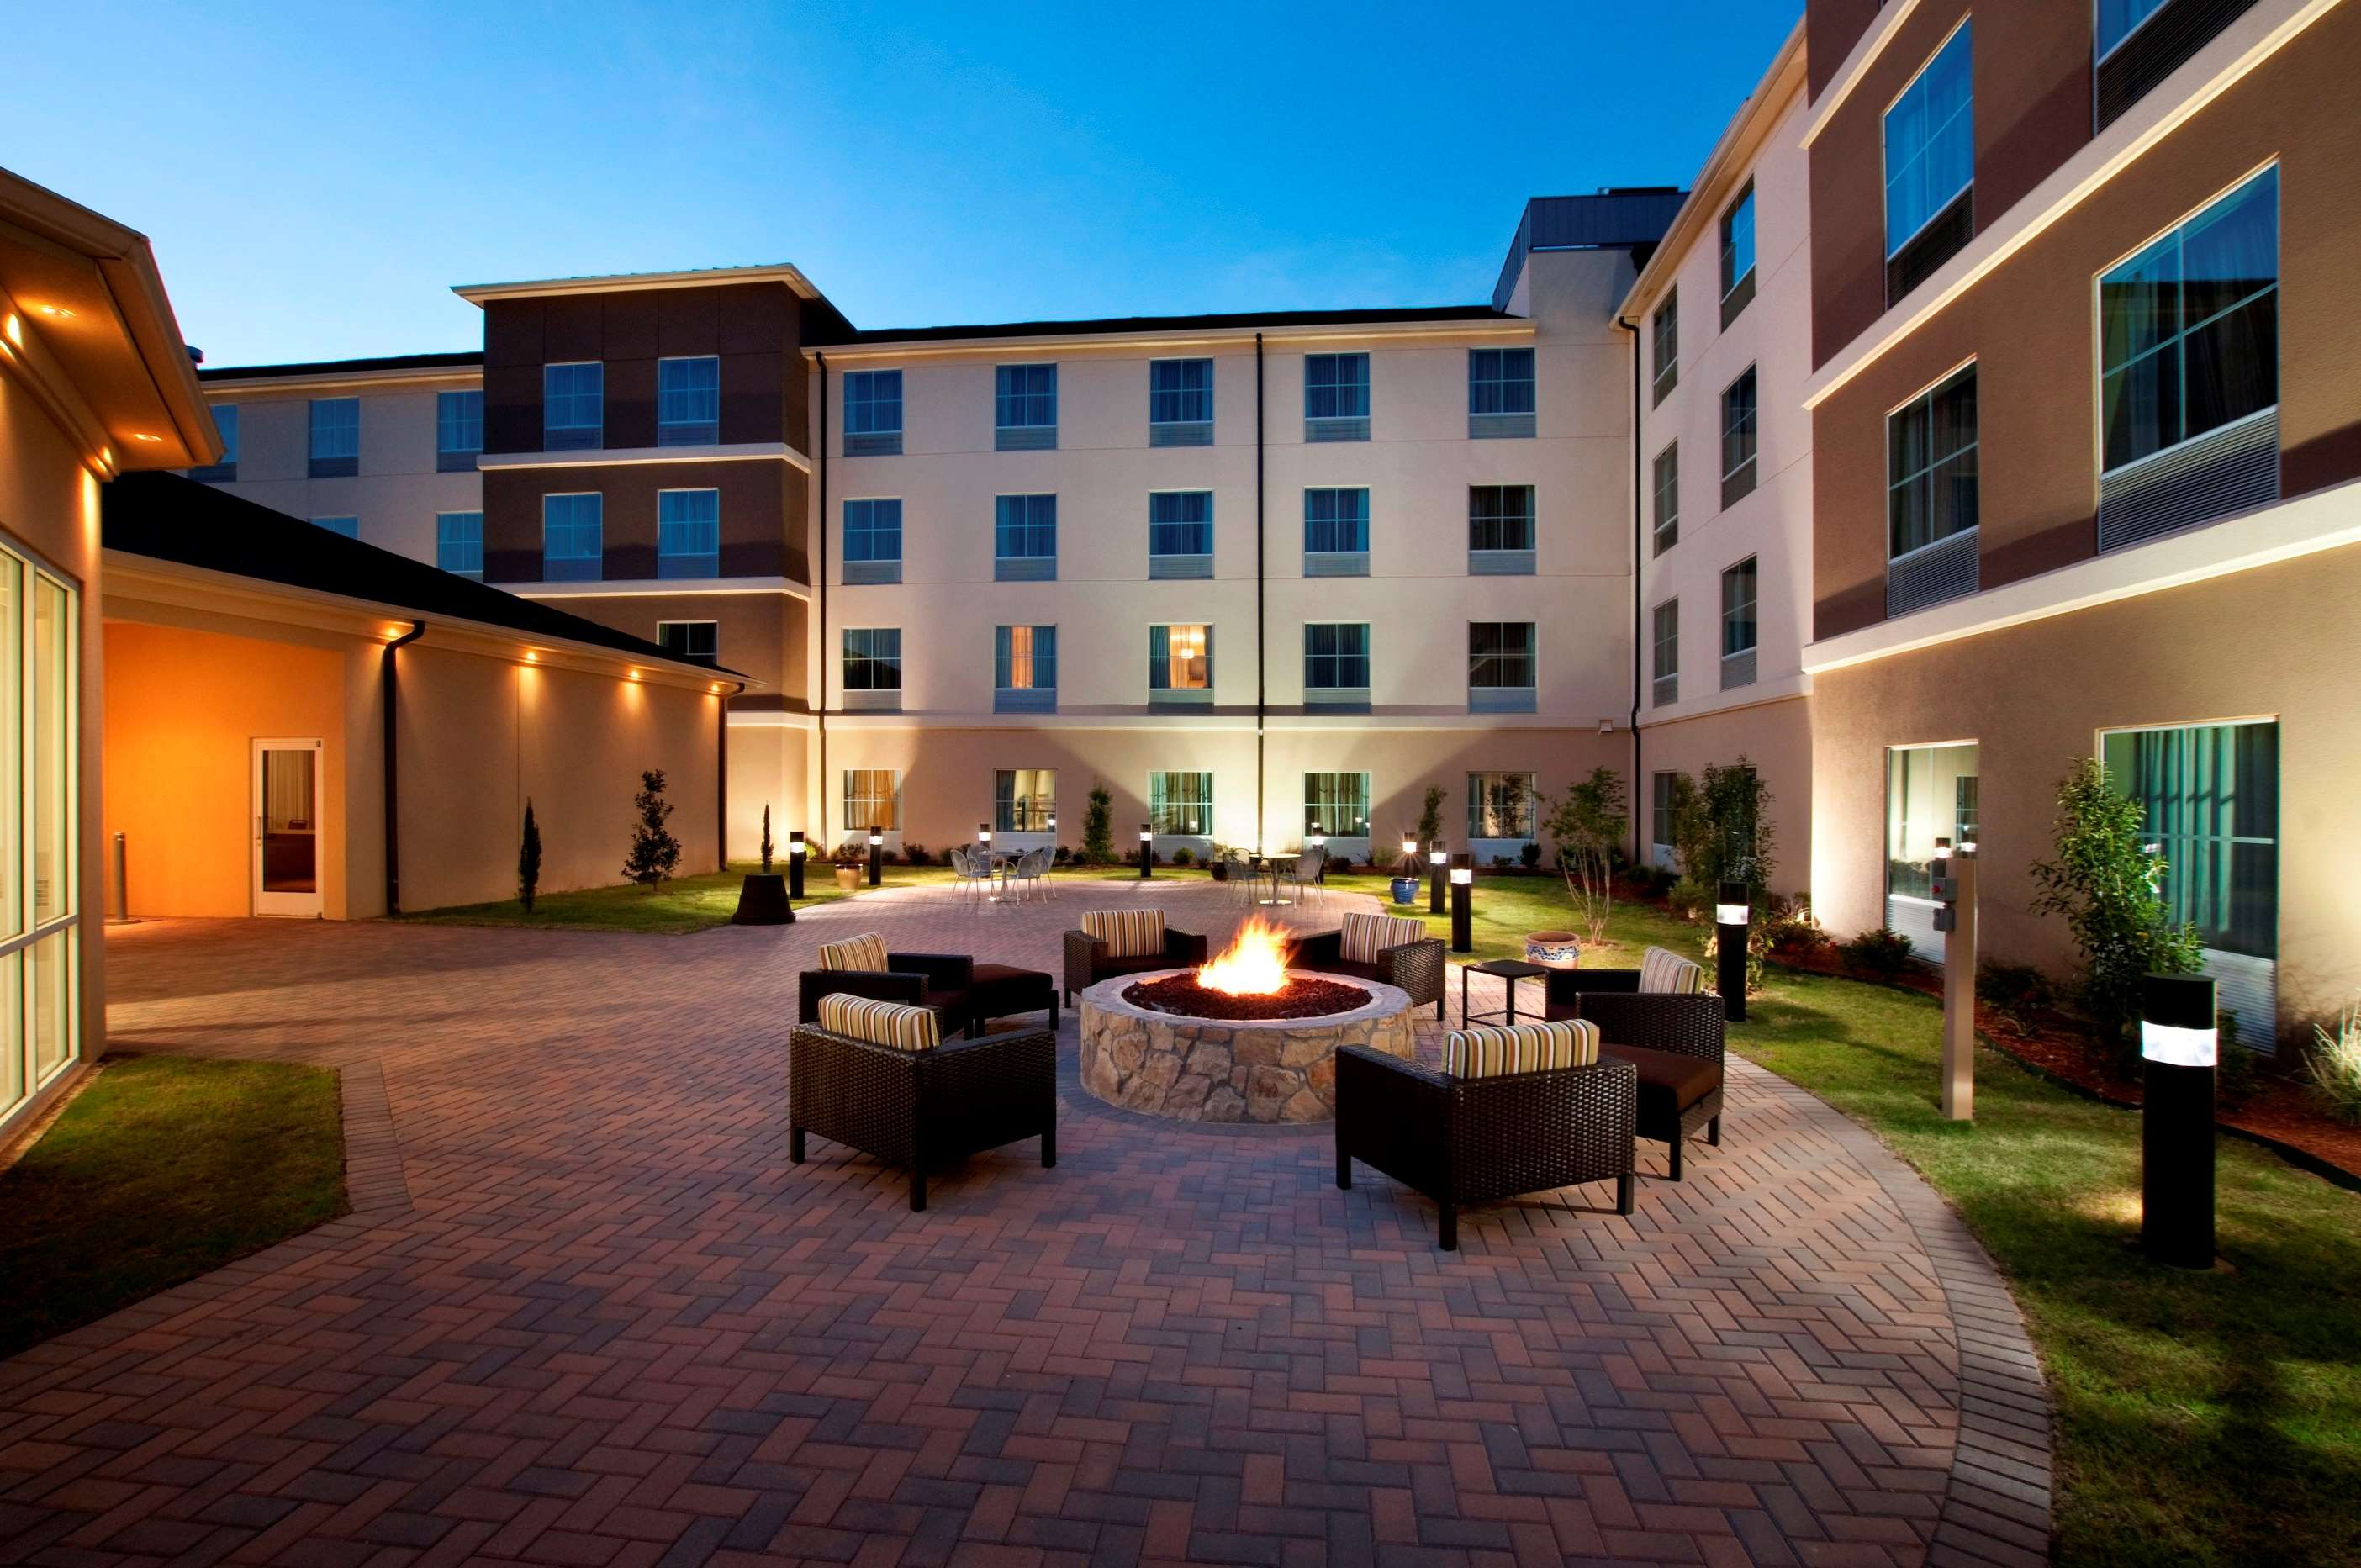 Homewood Suites by Hilton Fort Worth West at Cityview, TX image 1